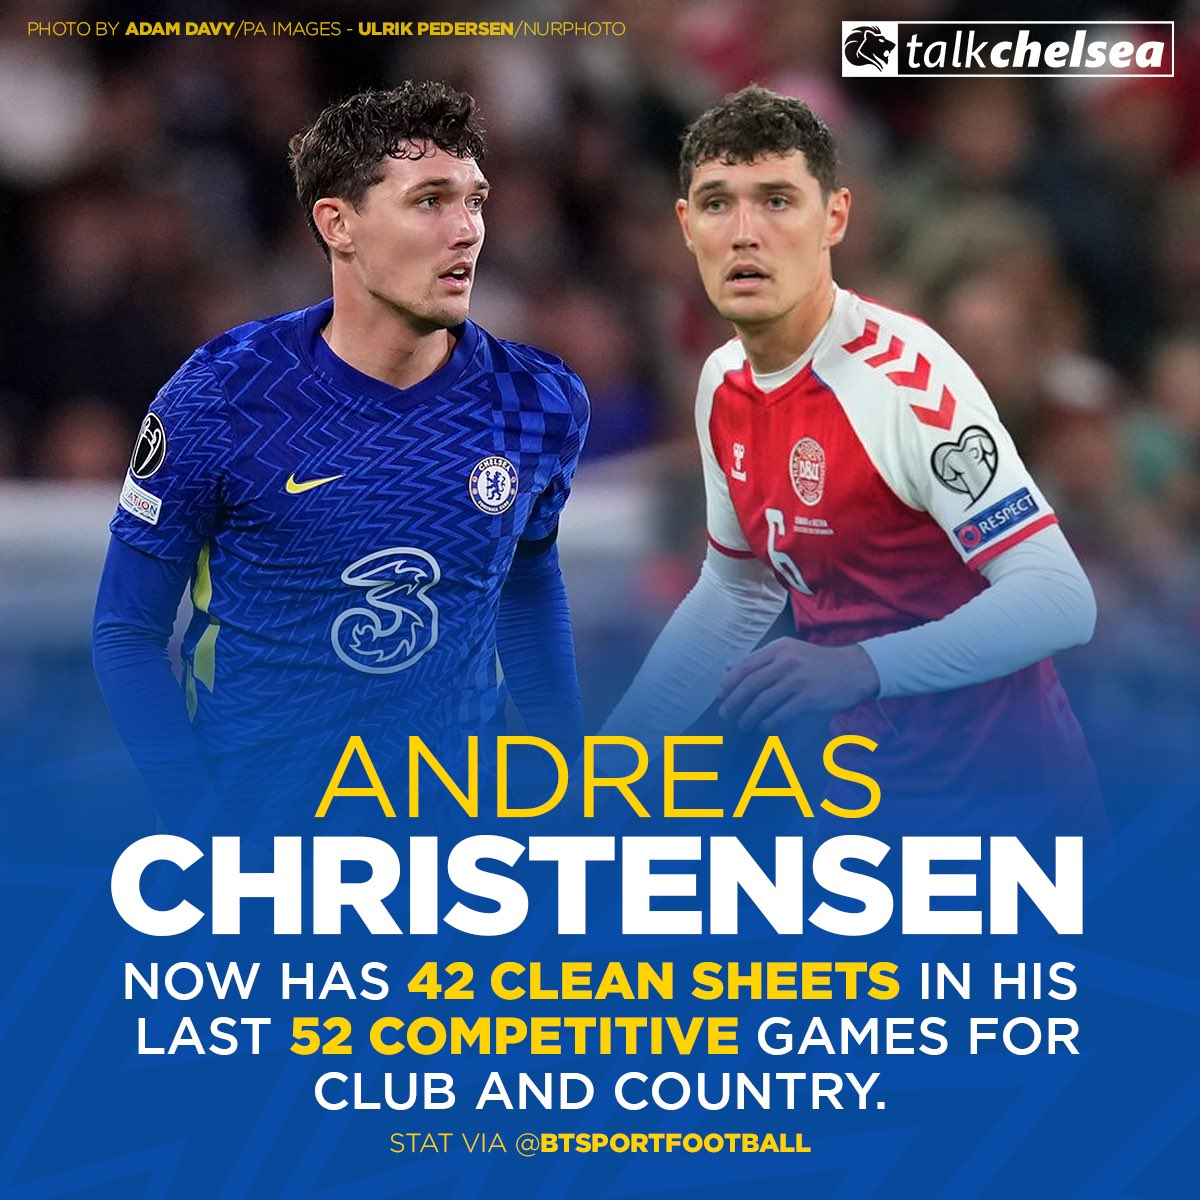 RT @talkchelsea: Andreas Christensen is going to the very top. 🙌 https://t.co/FHpmIT9WSg